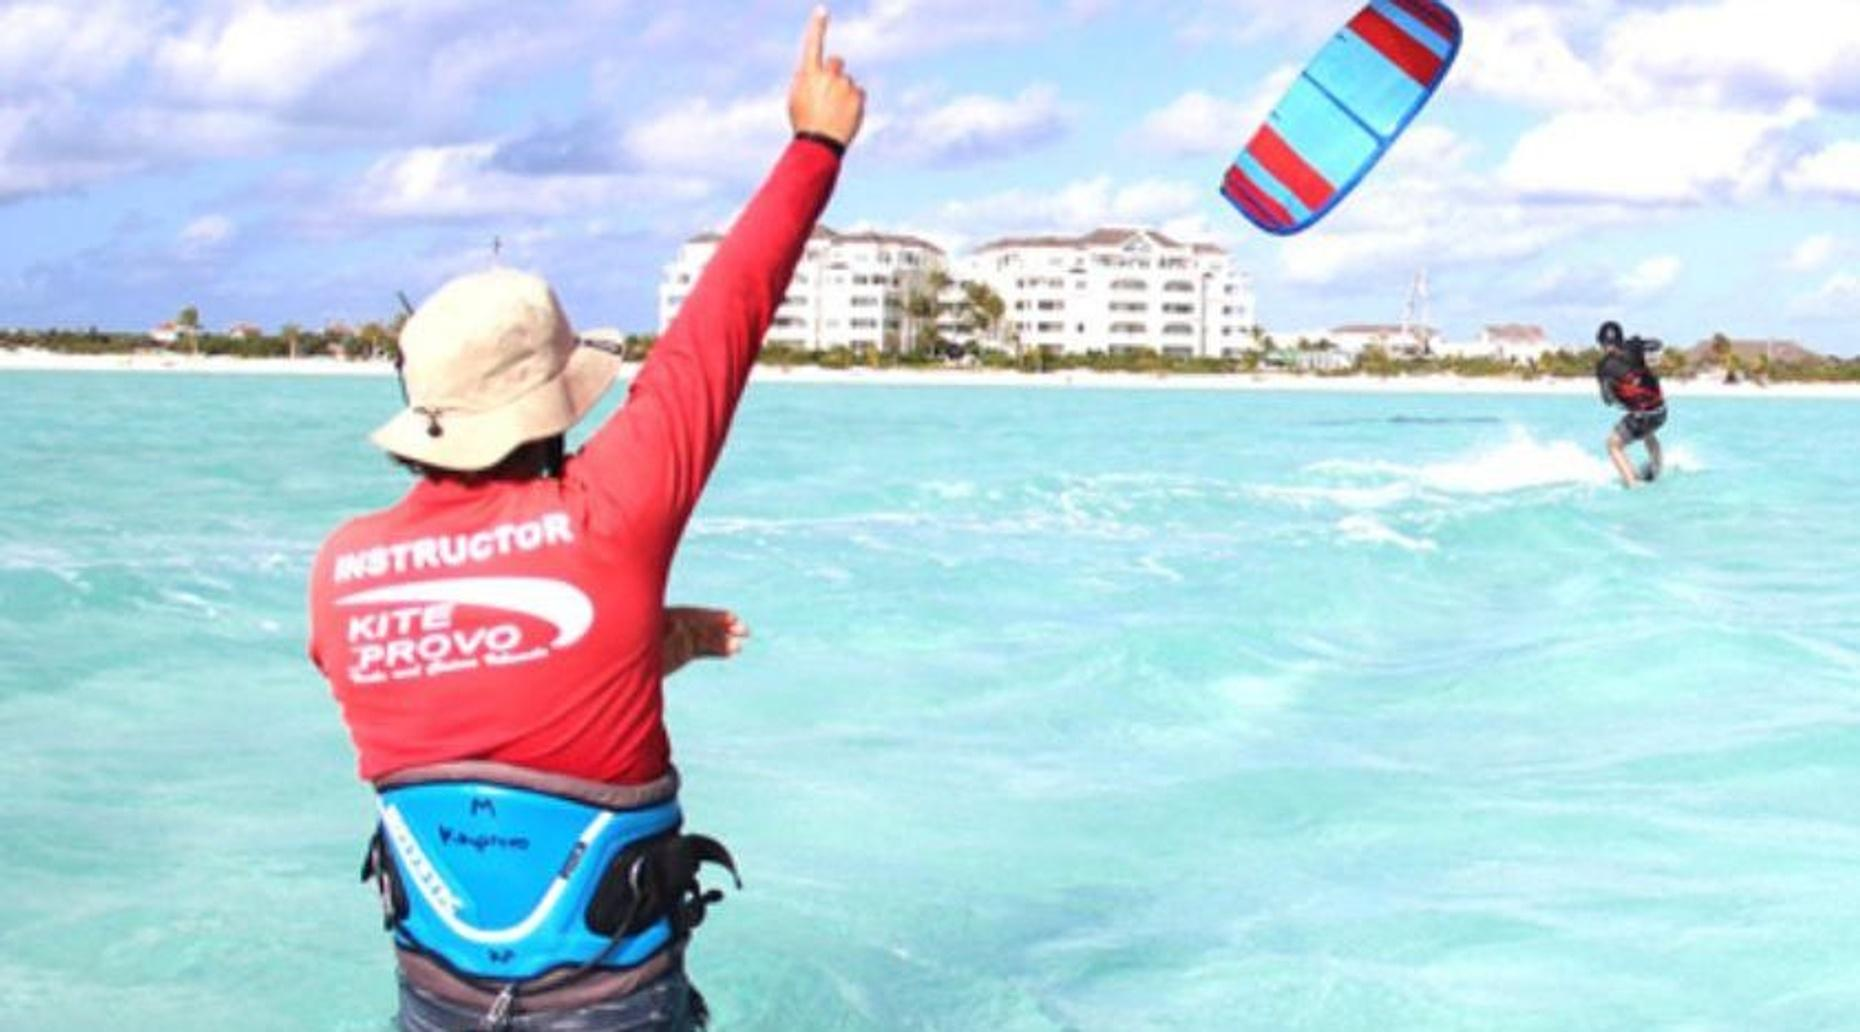 Group Beginner Kiteboarding Lesson in Turks and Caicos